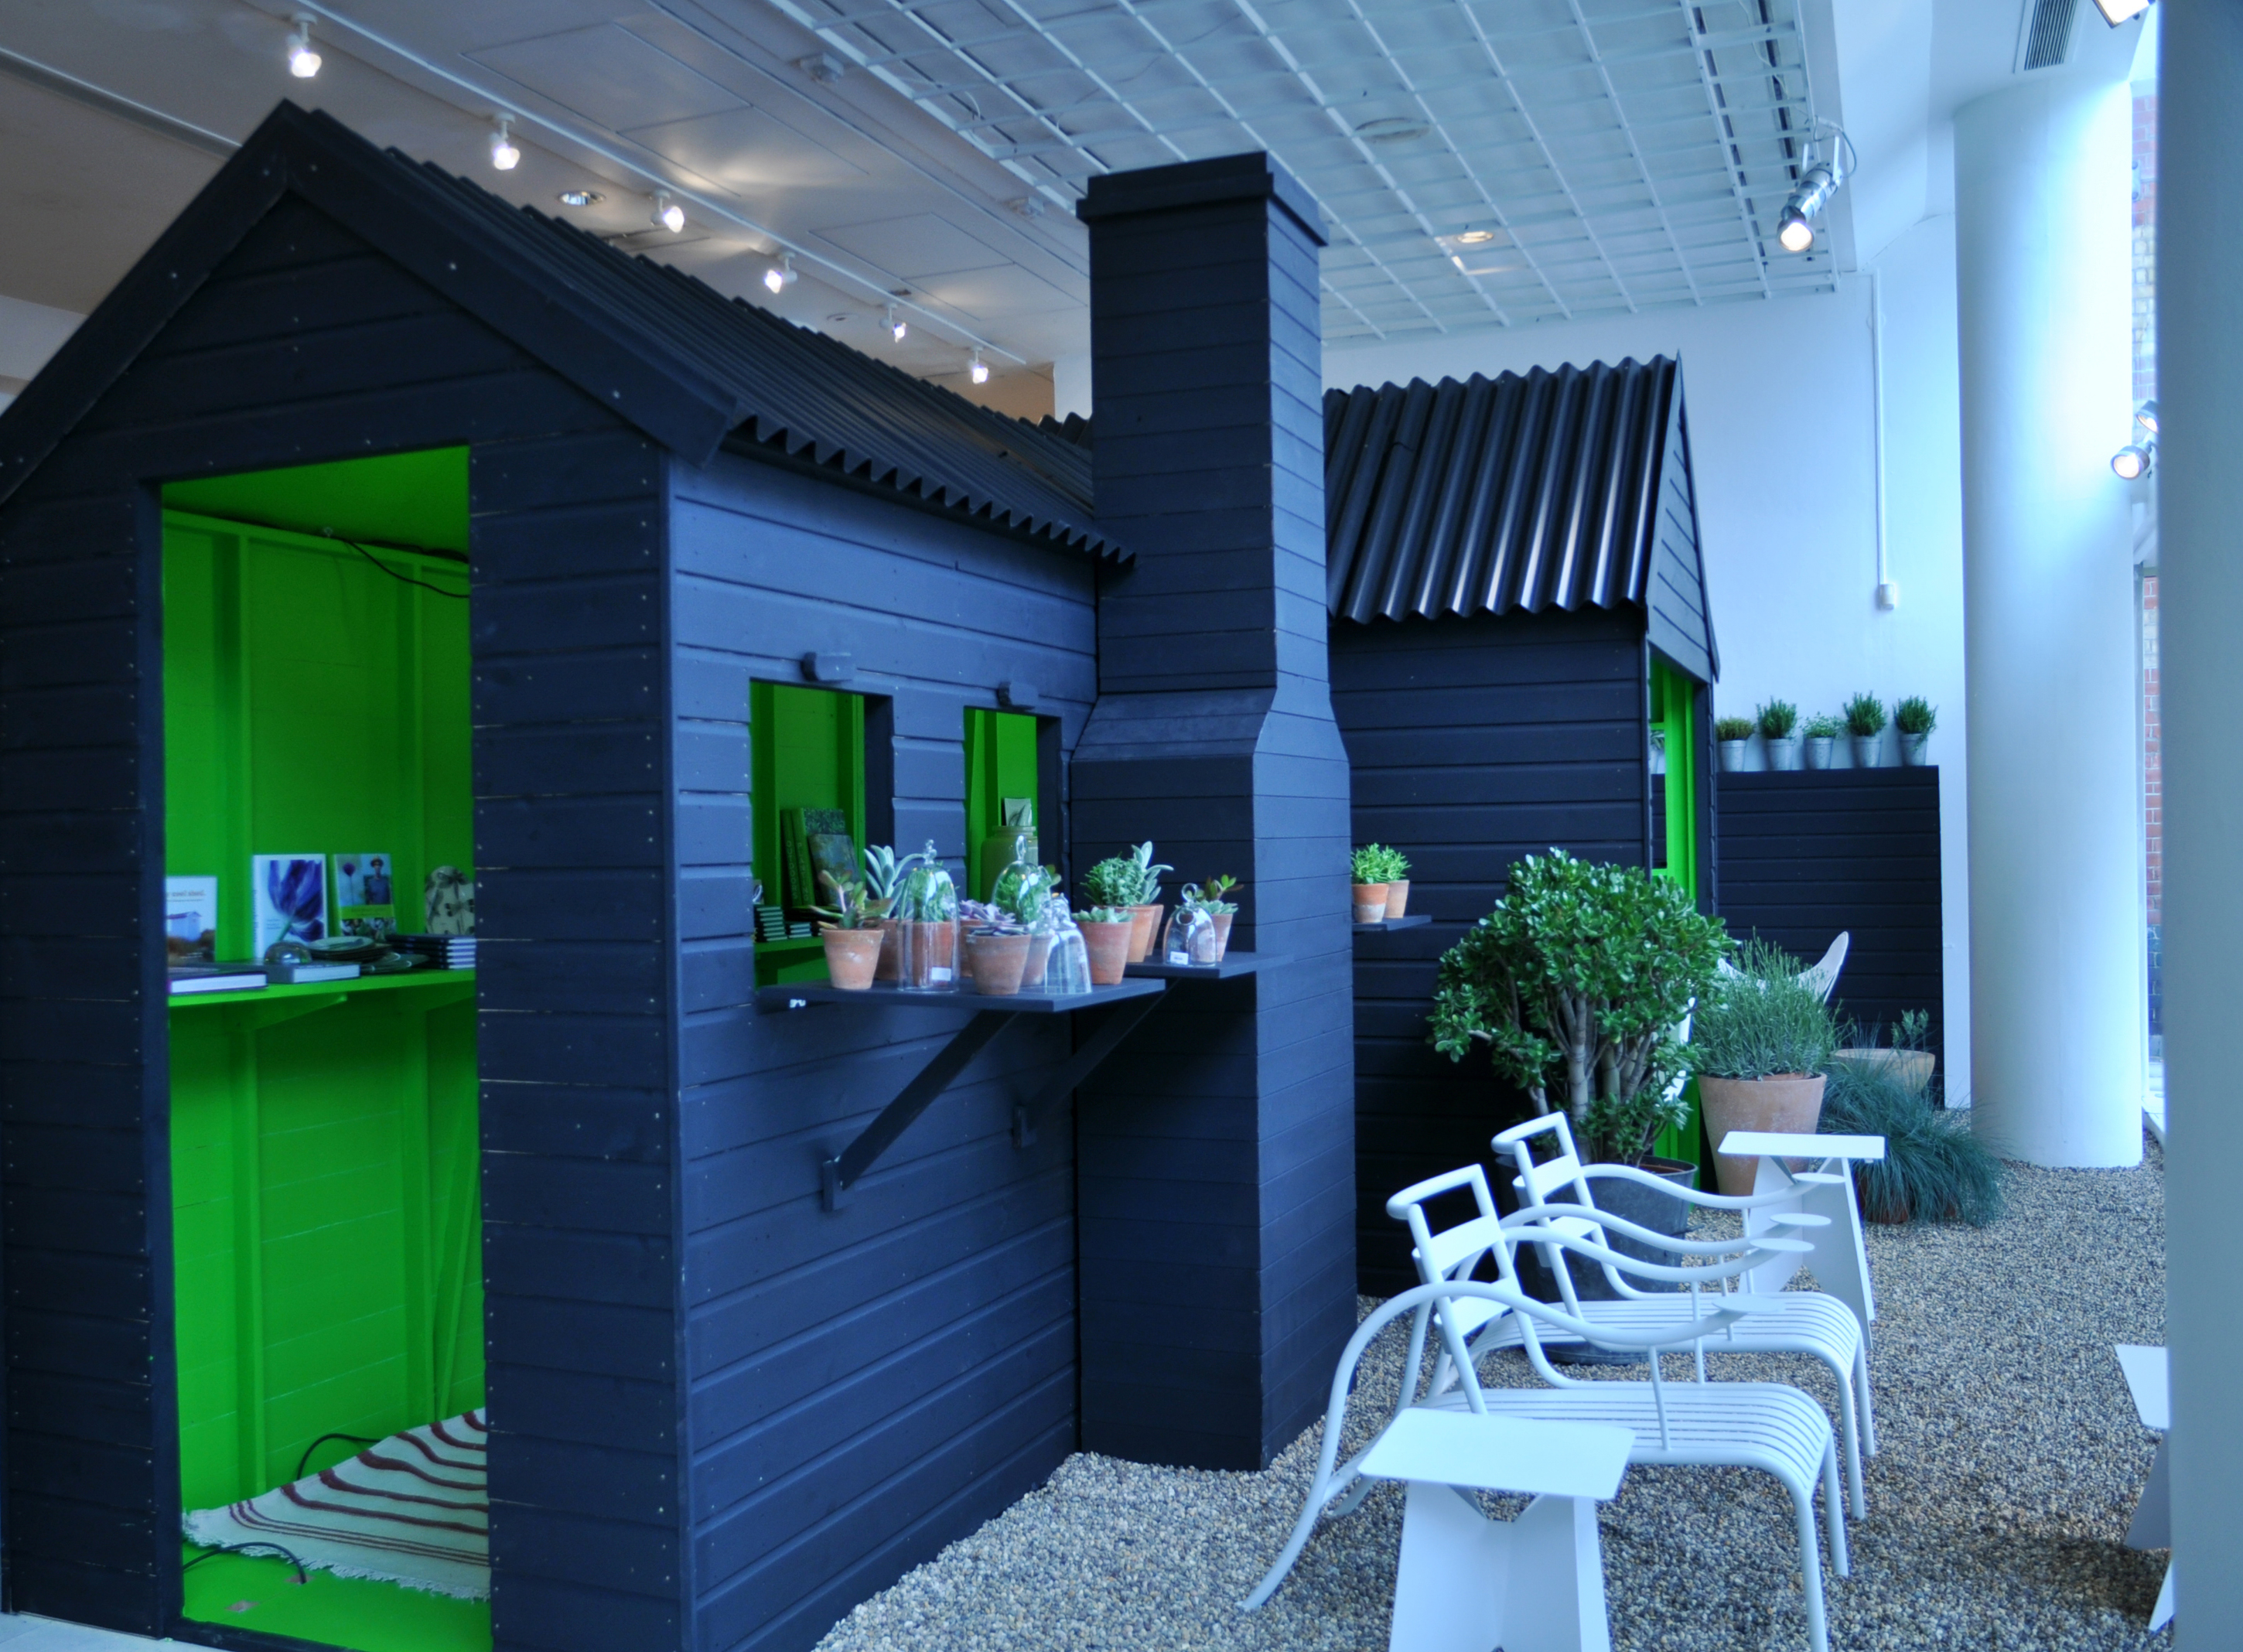 The conran shop what 39 s going on at conran the conran for Tiny garden rooms